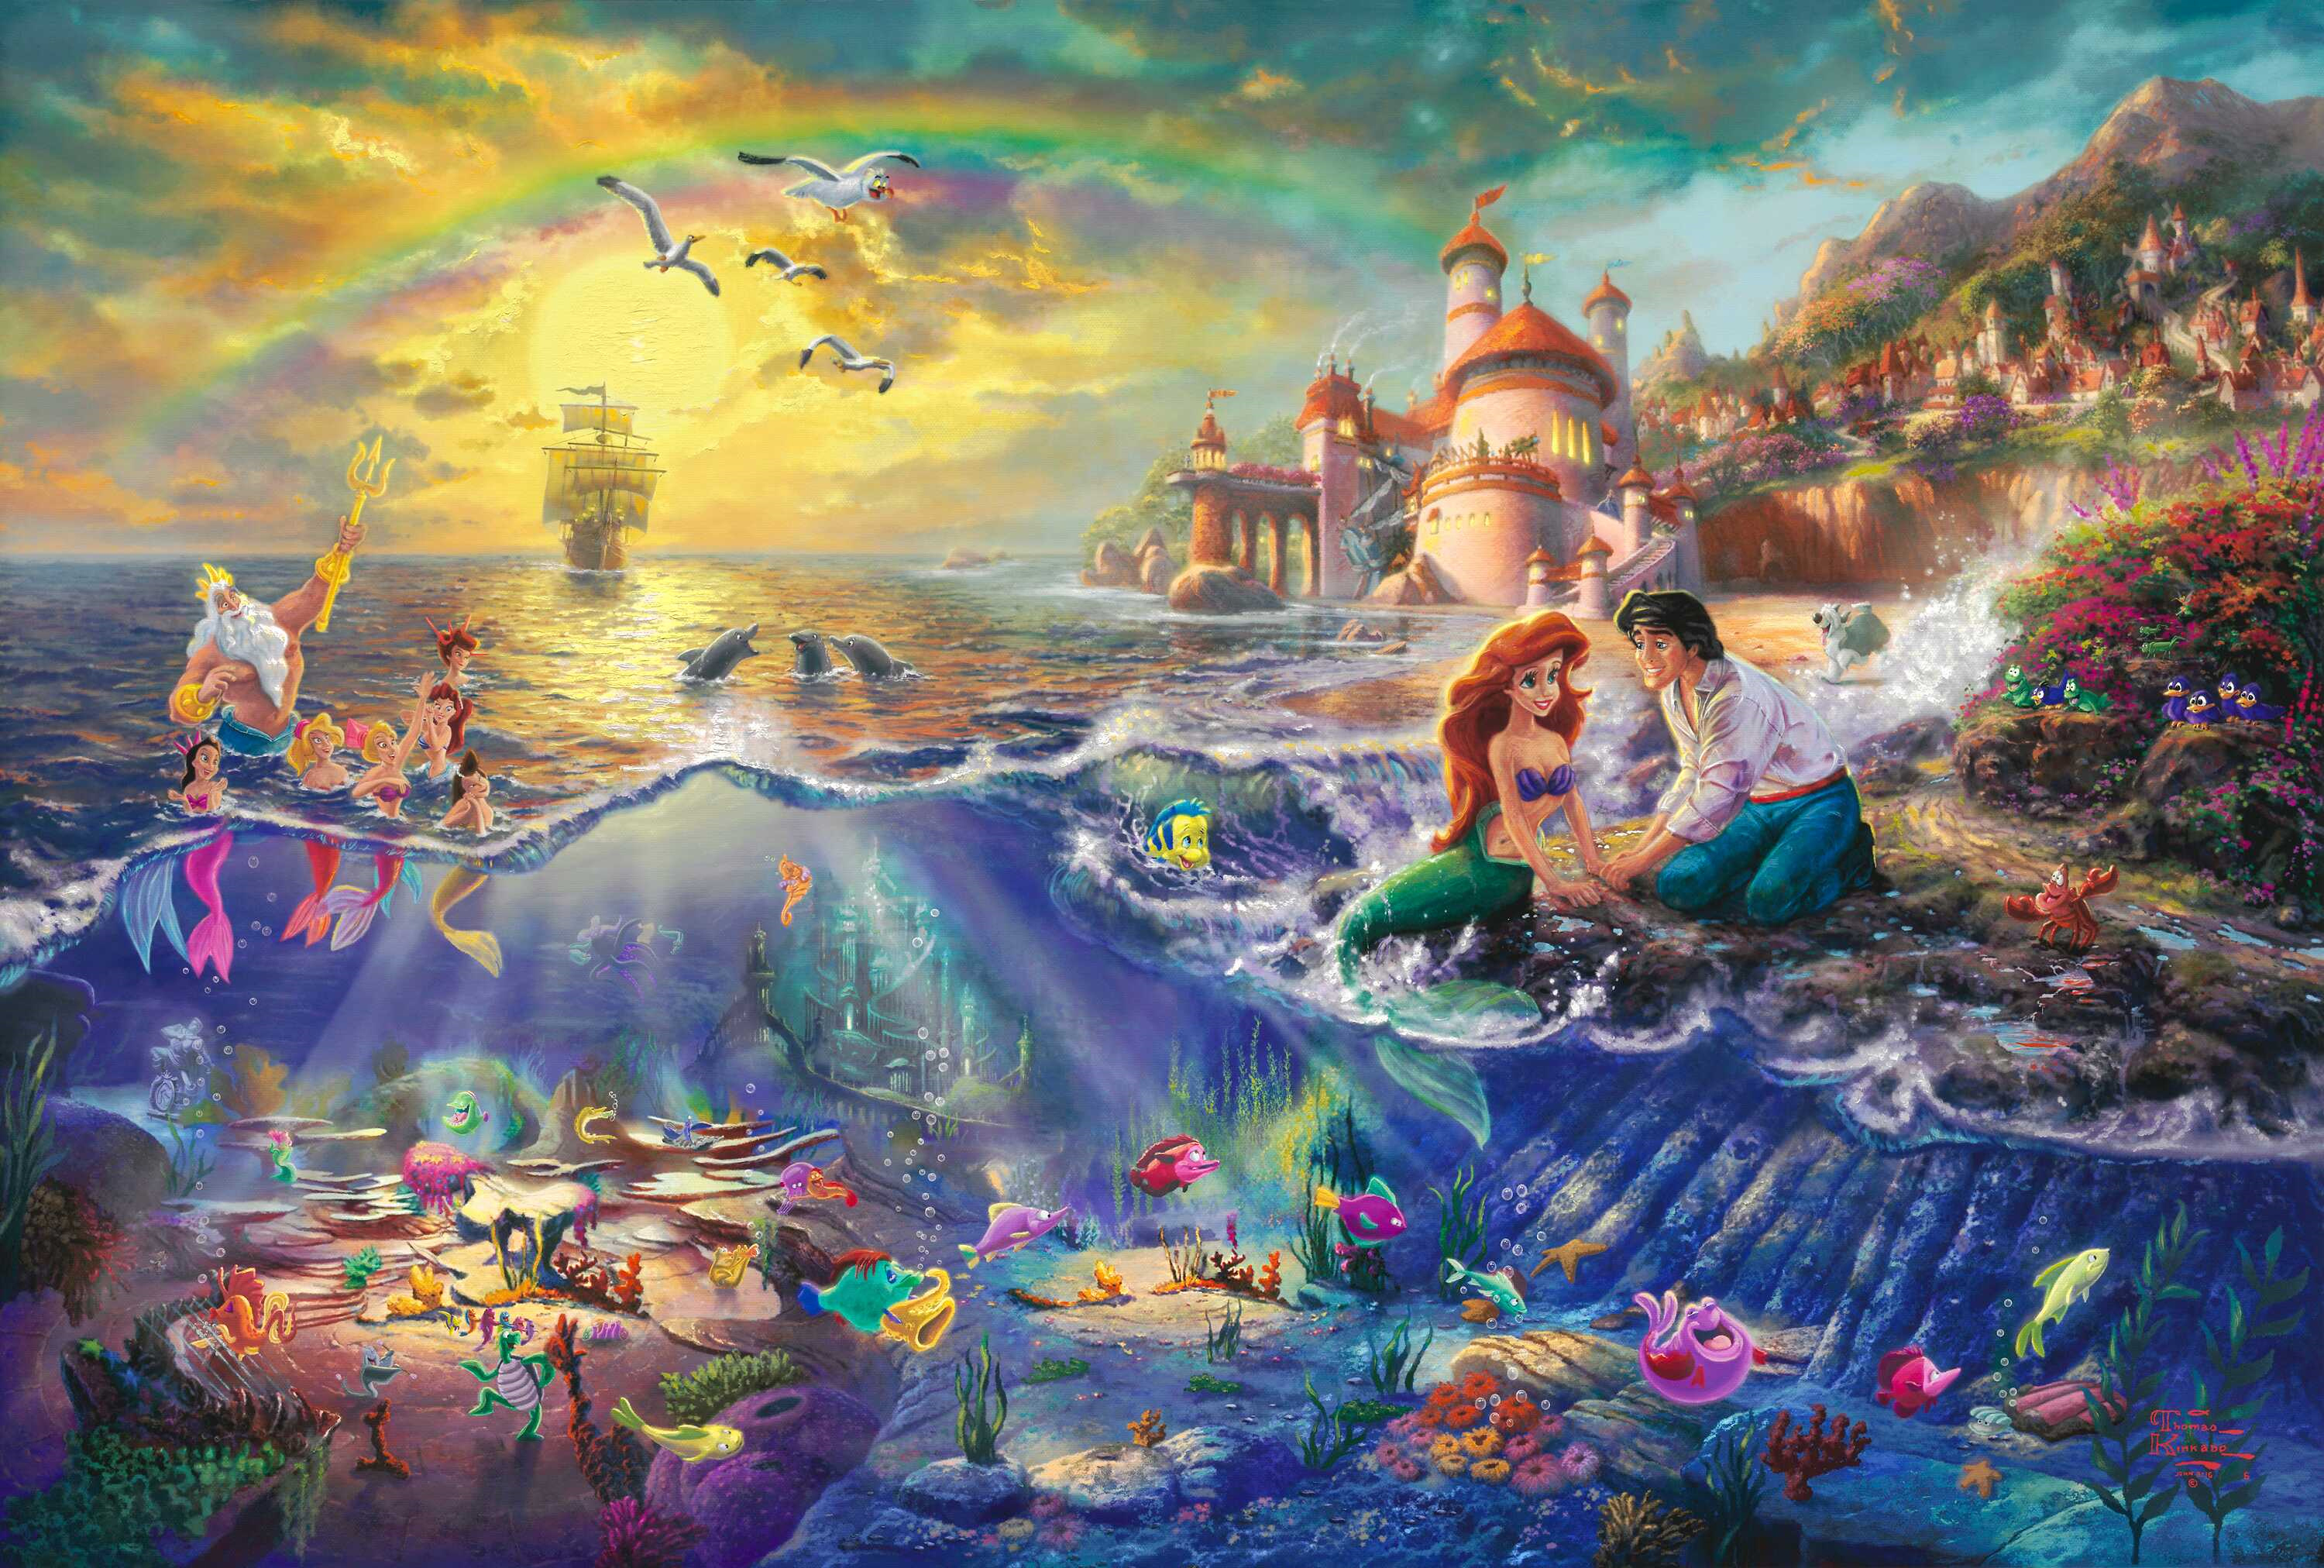 Disney Princess Wallpapers Pictures Desktop Wallpapers 3000x2024 3000x2024